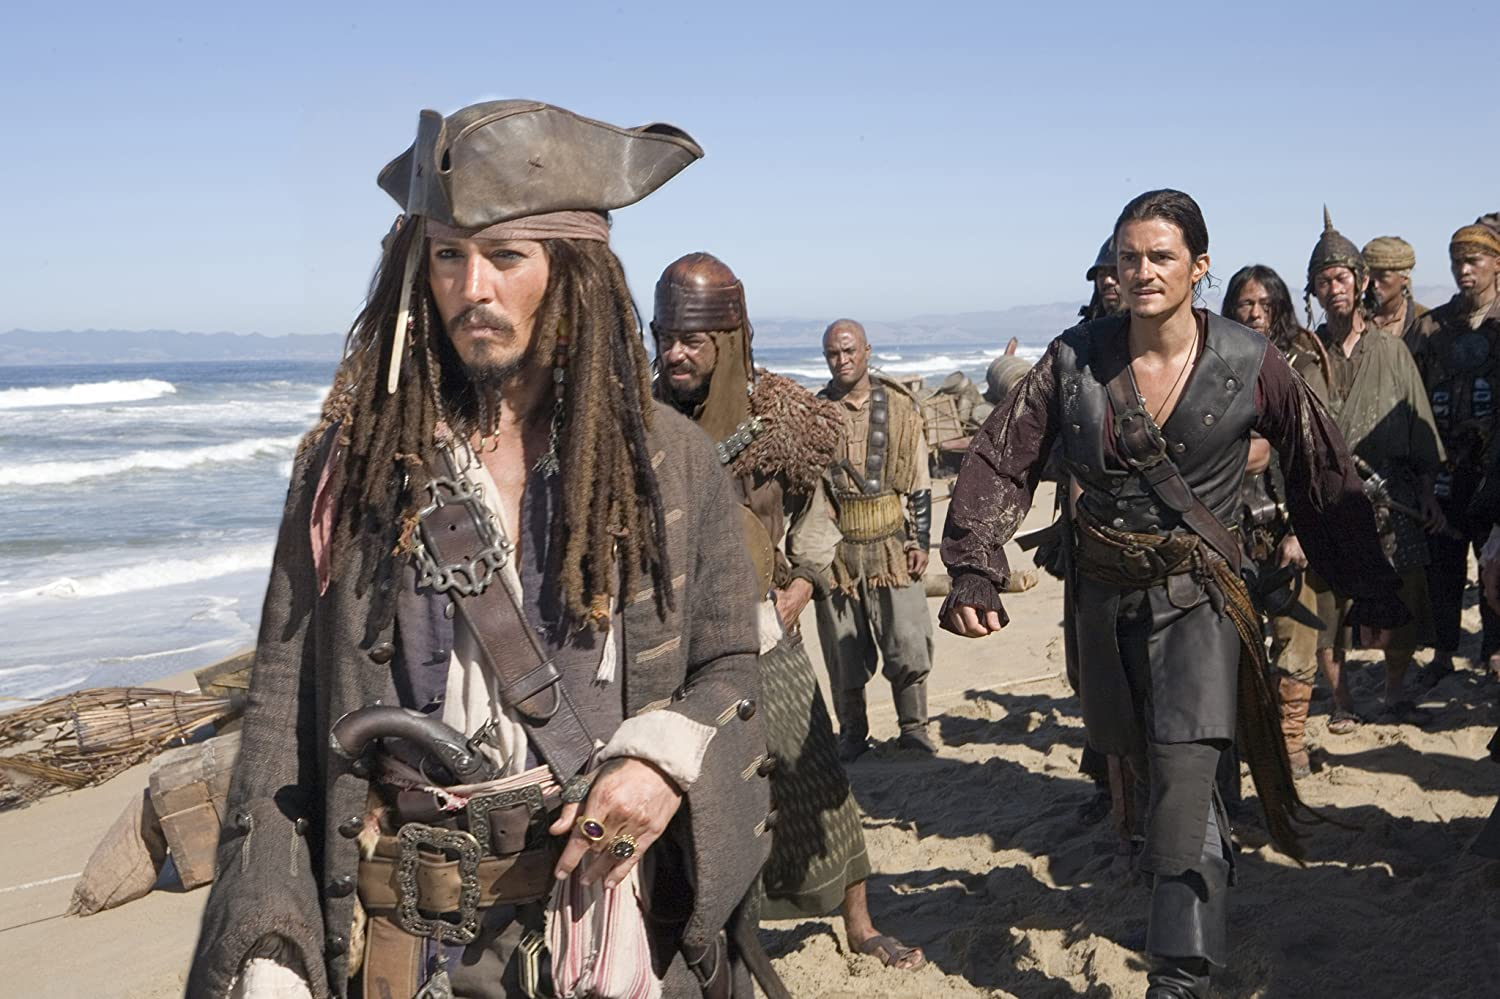 Johnny Depp and Orlando Bloom in Pirates of the Caribbean: At World's End (2007)